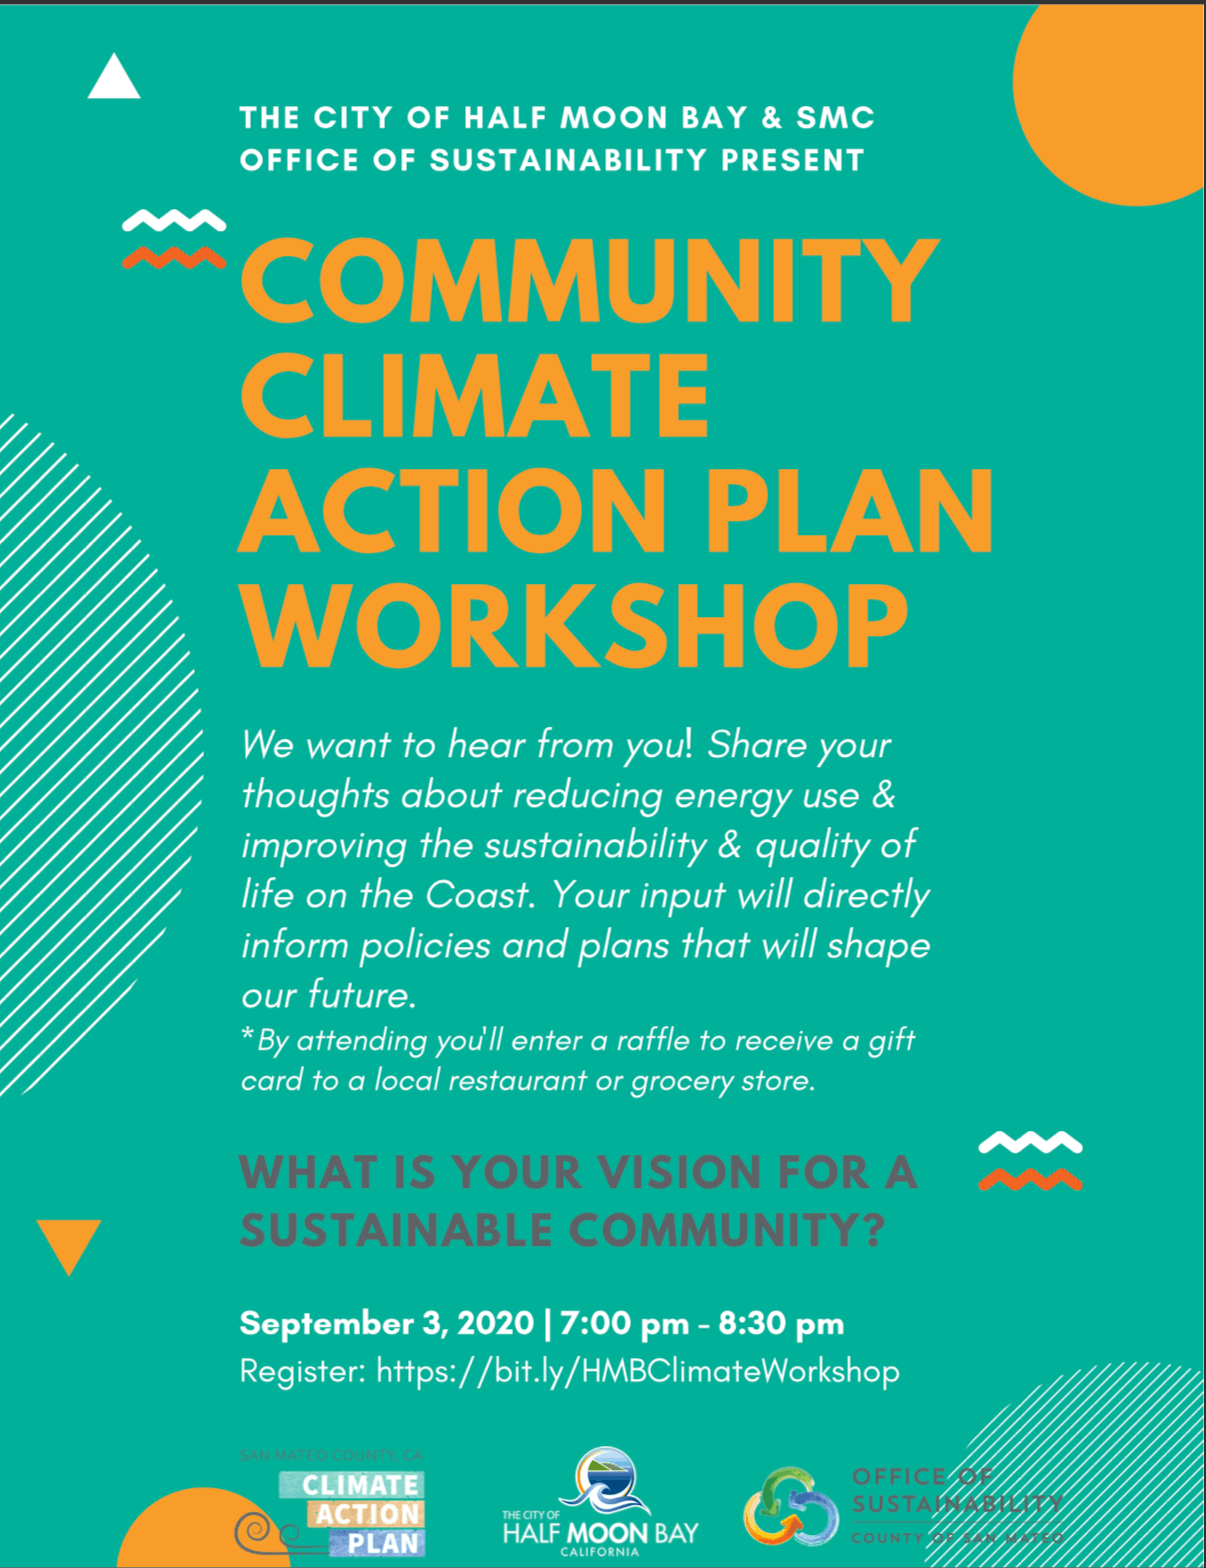 Climate Action Plan Workshop 9/3 at 7pm on Zoom